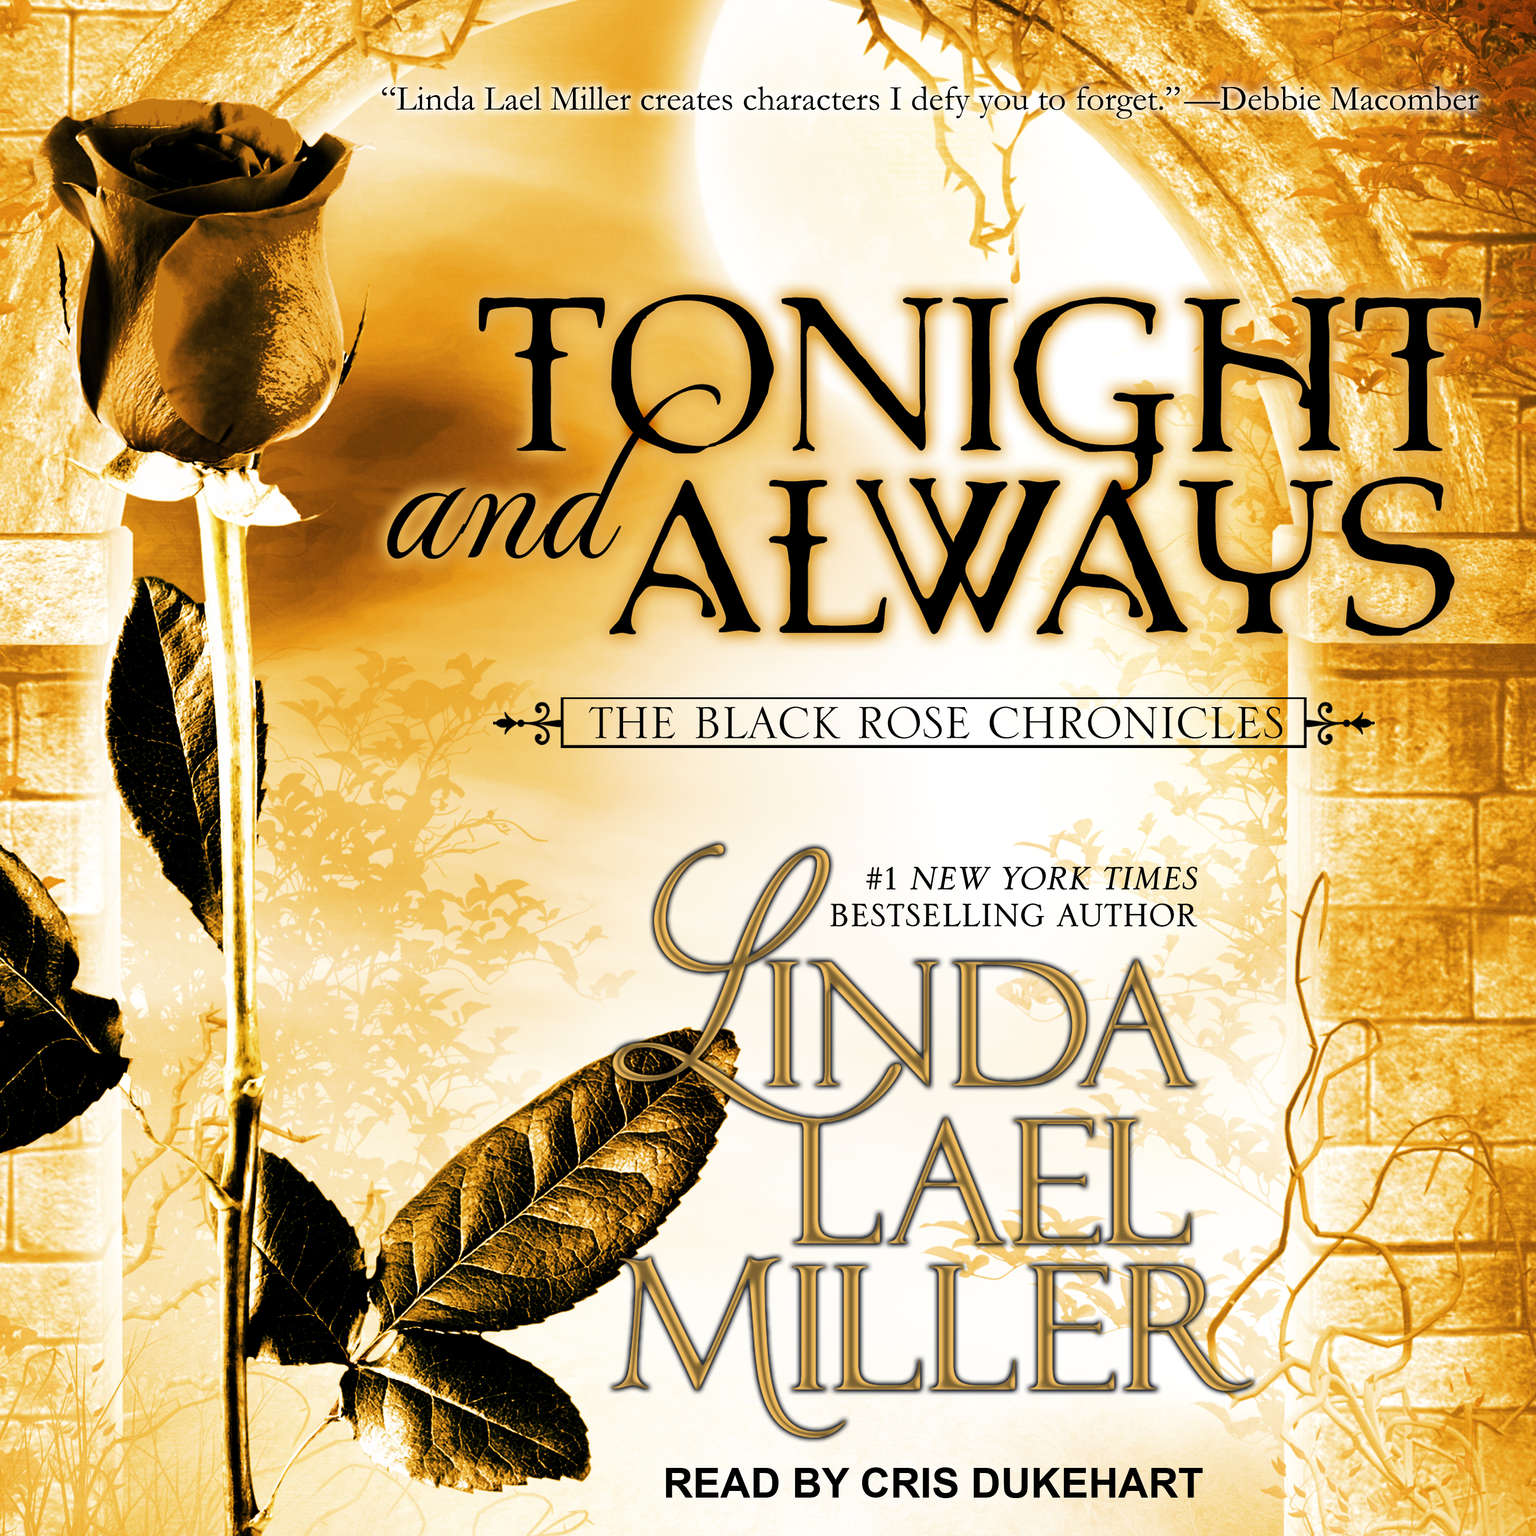 Tonight and Always  Audiobook, by Linda Lael Miller